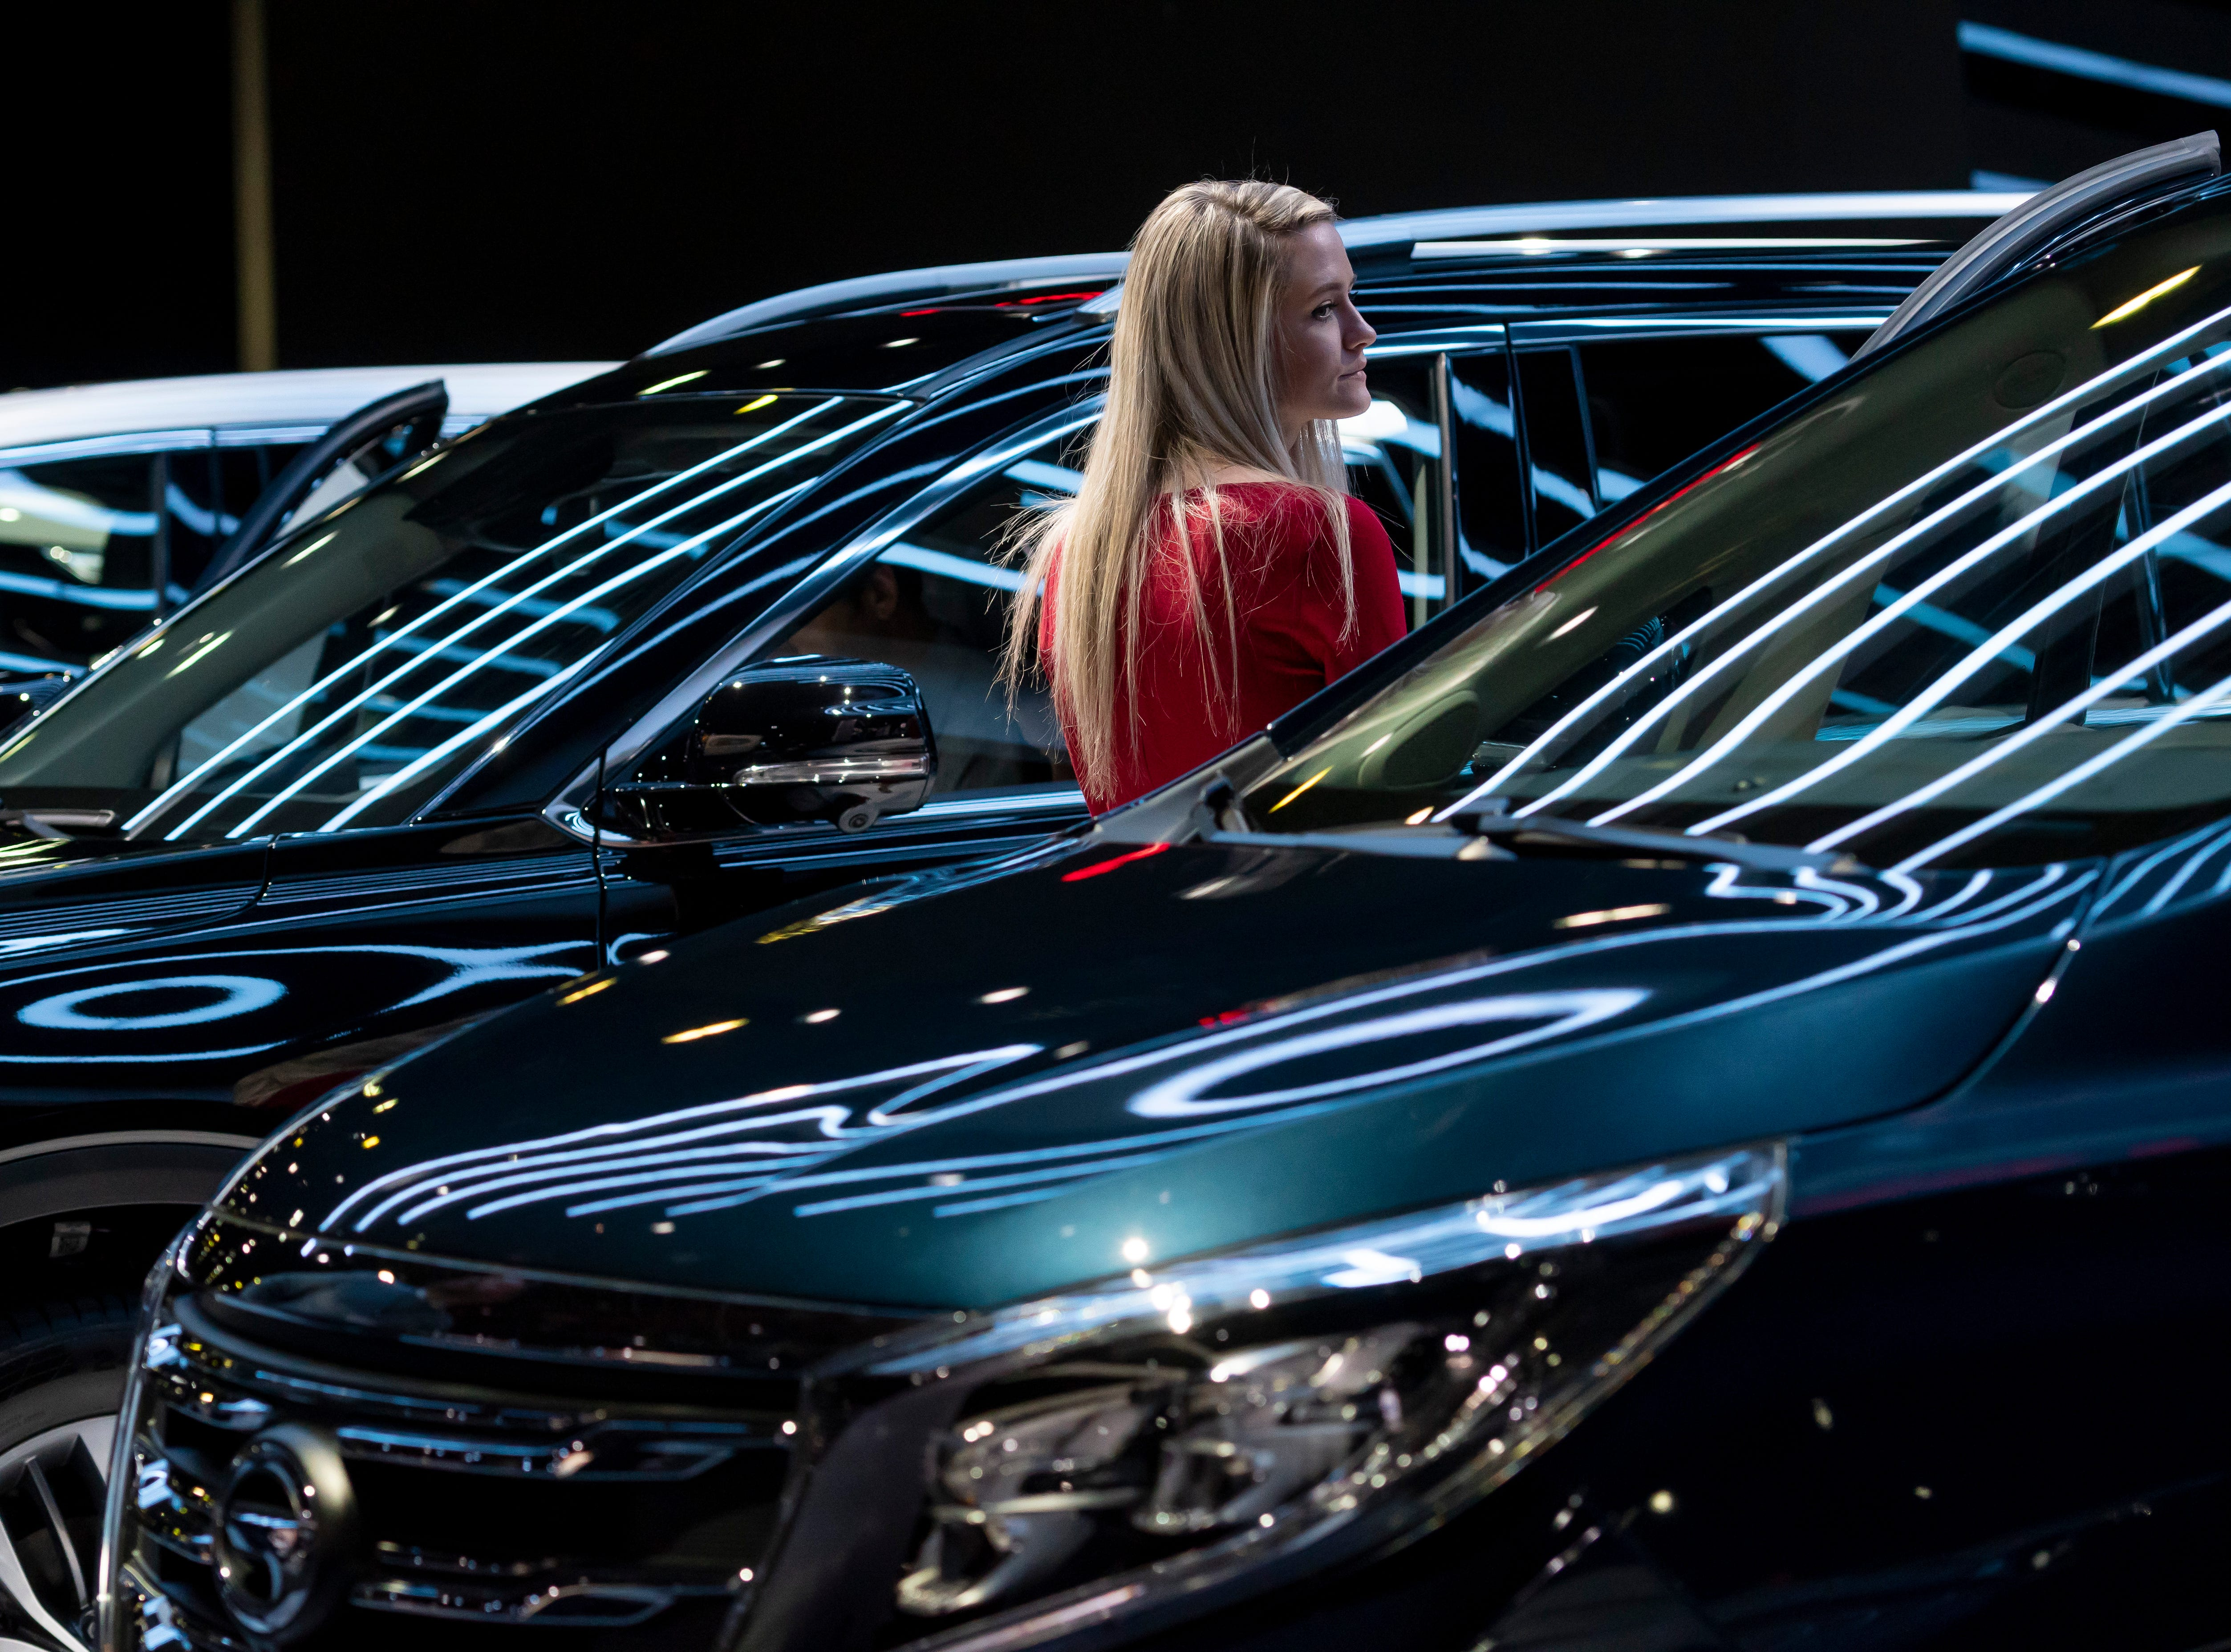 A spokeswoman stands among a row of vehicles at the GAC display.